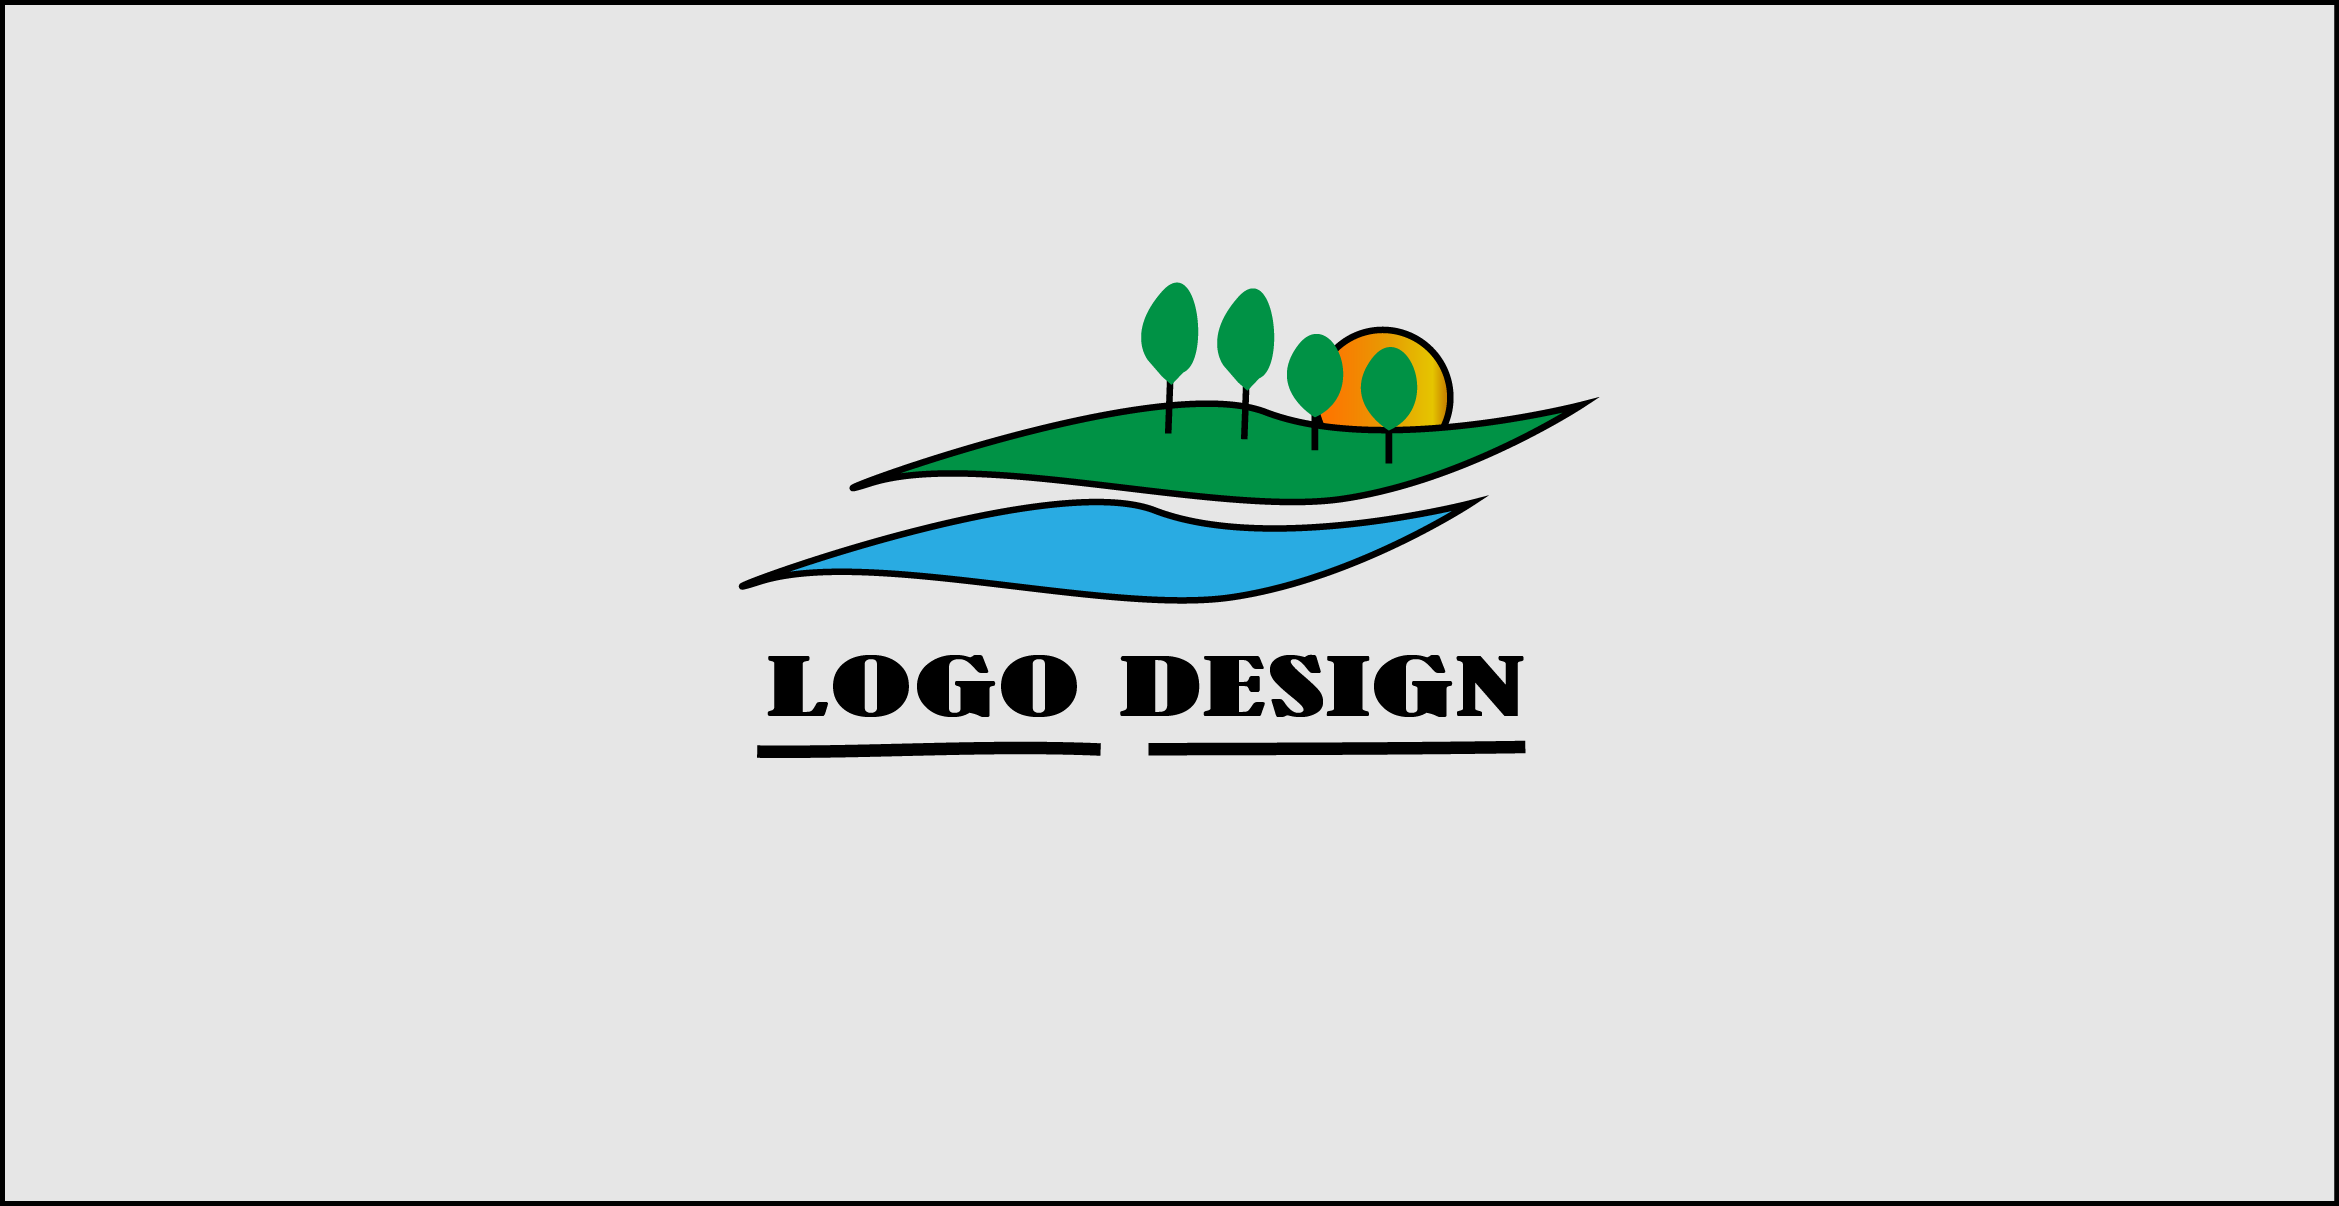 I am a graphics designer. I can make logo design